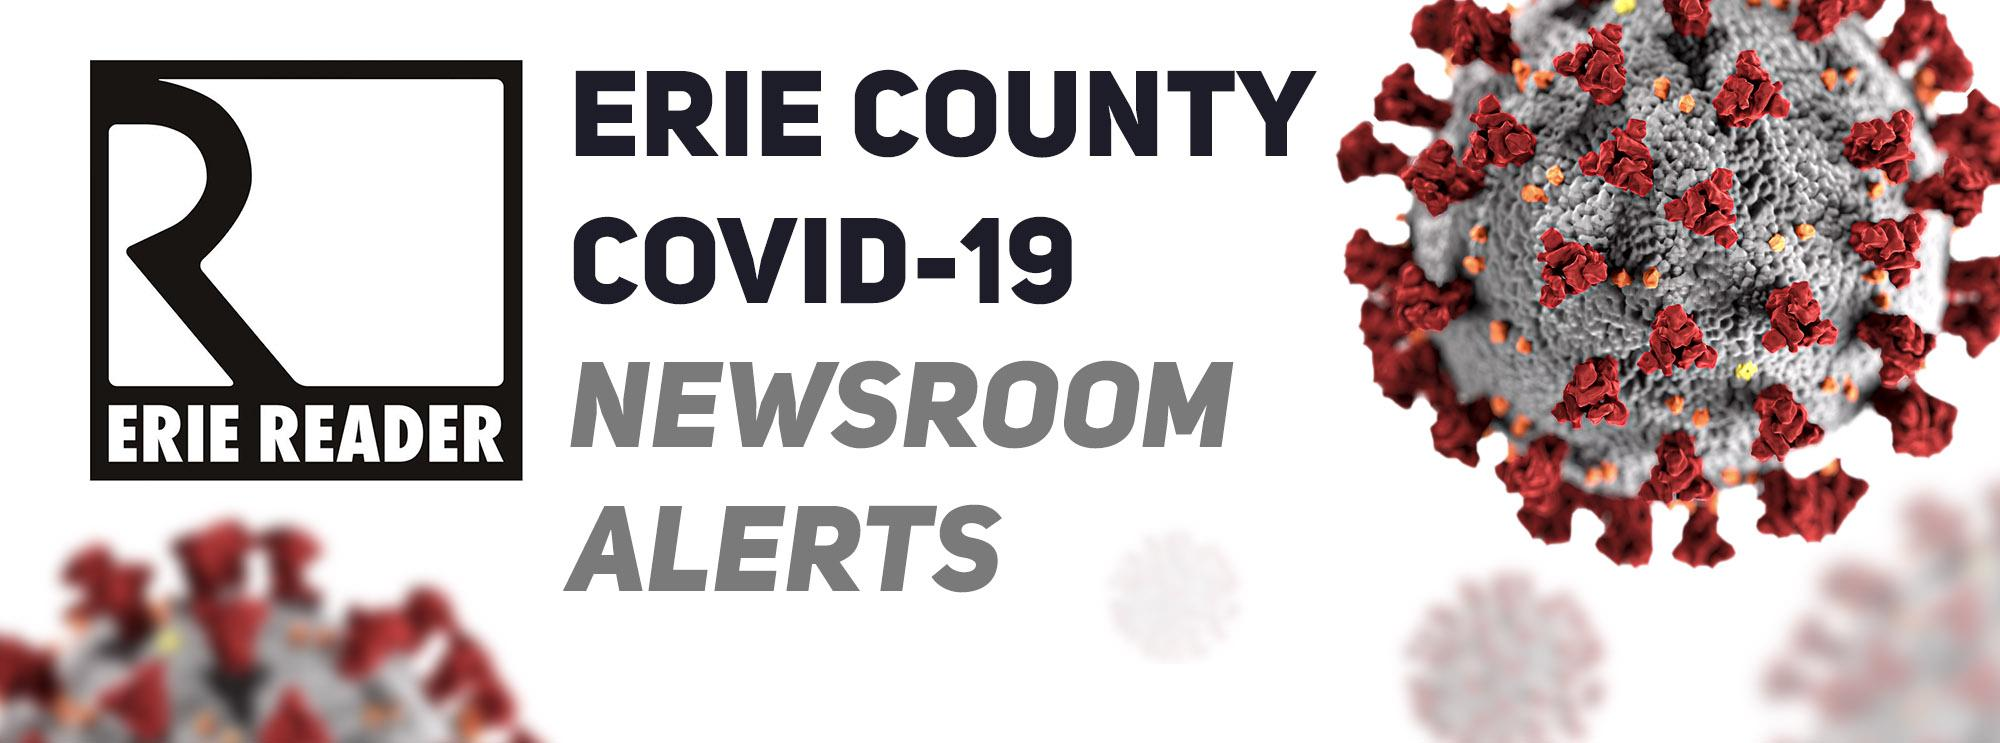 Erie County Covid 19 Newsroom Alerts Erie Reader